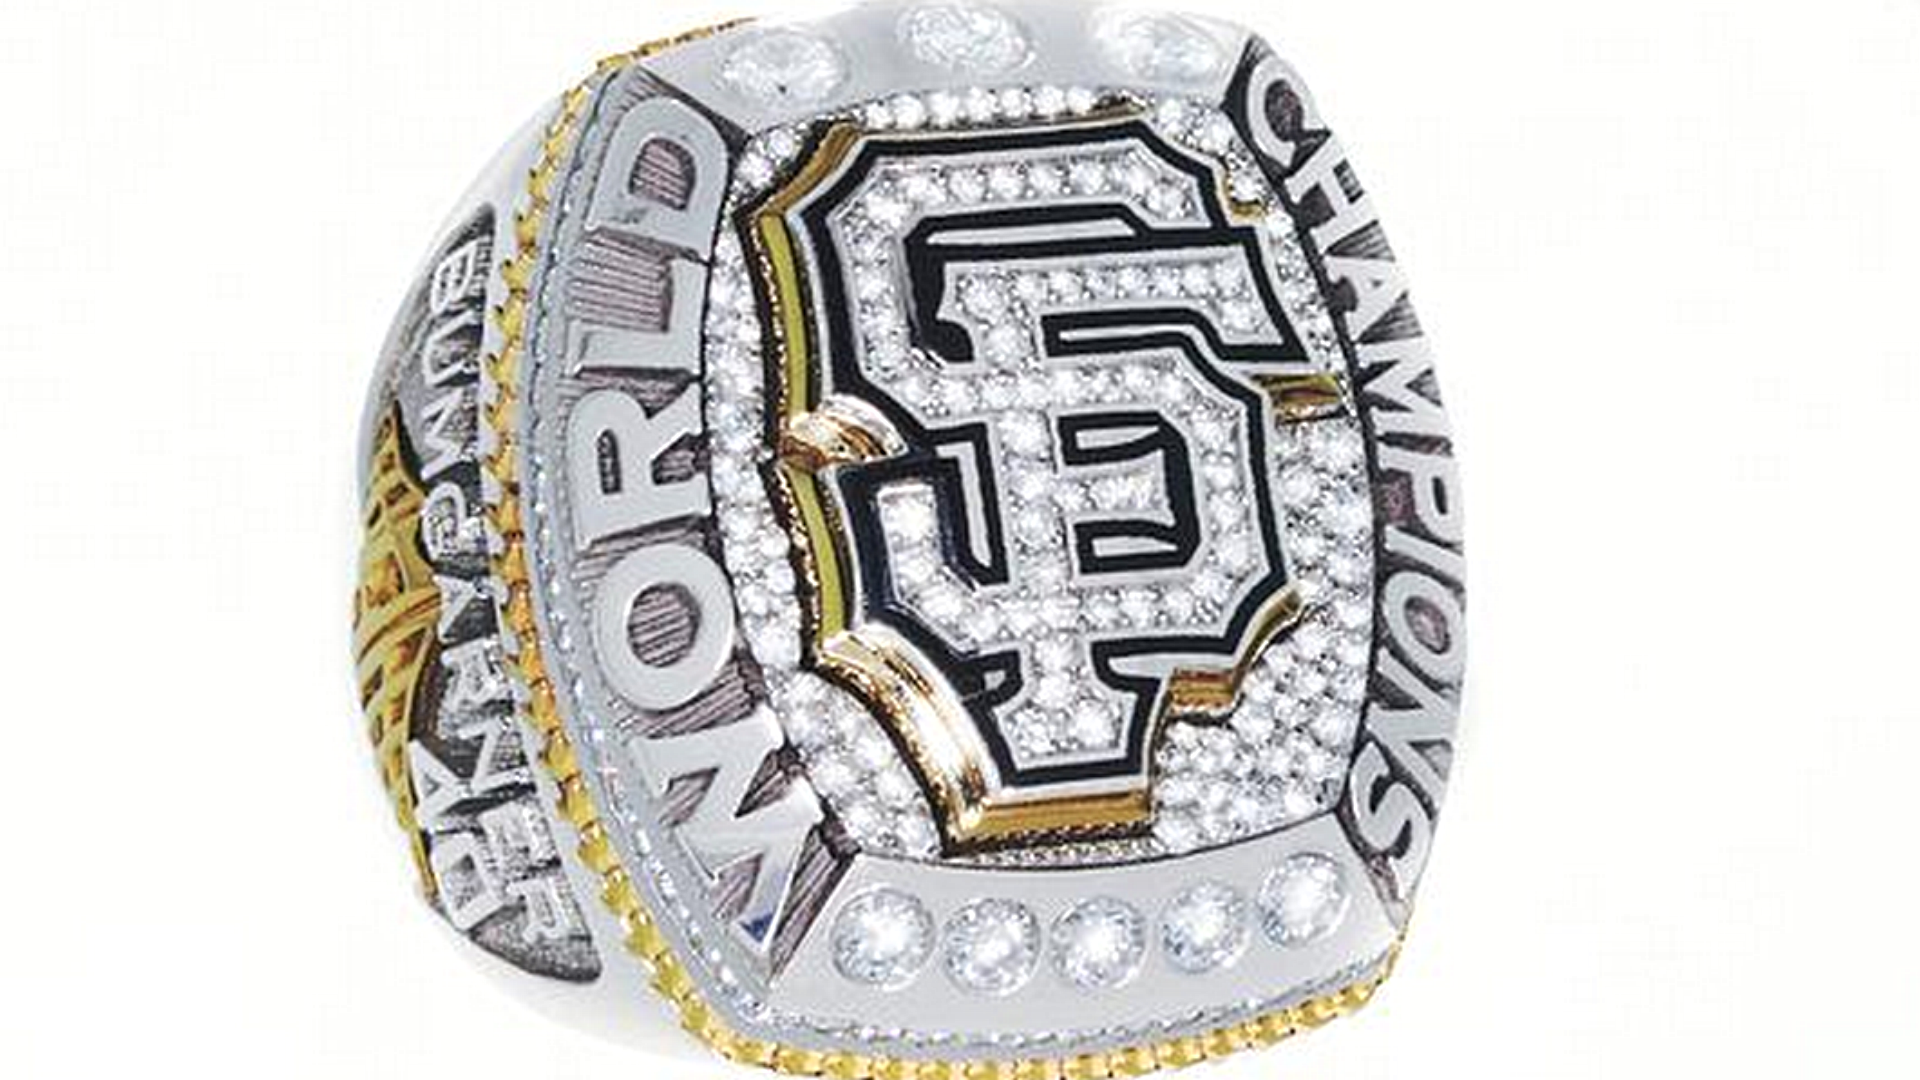 Giants receive their 2014 World Series rings